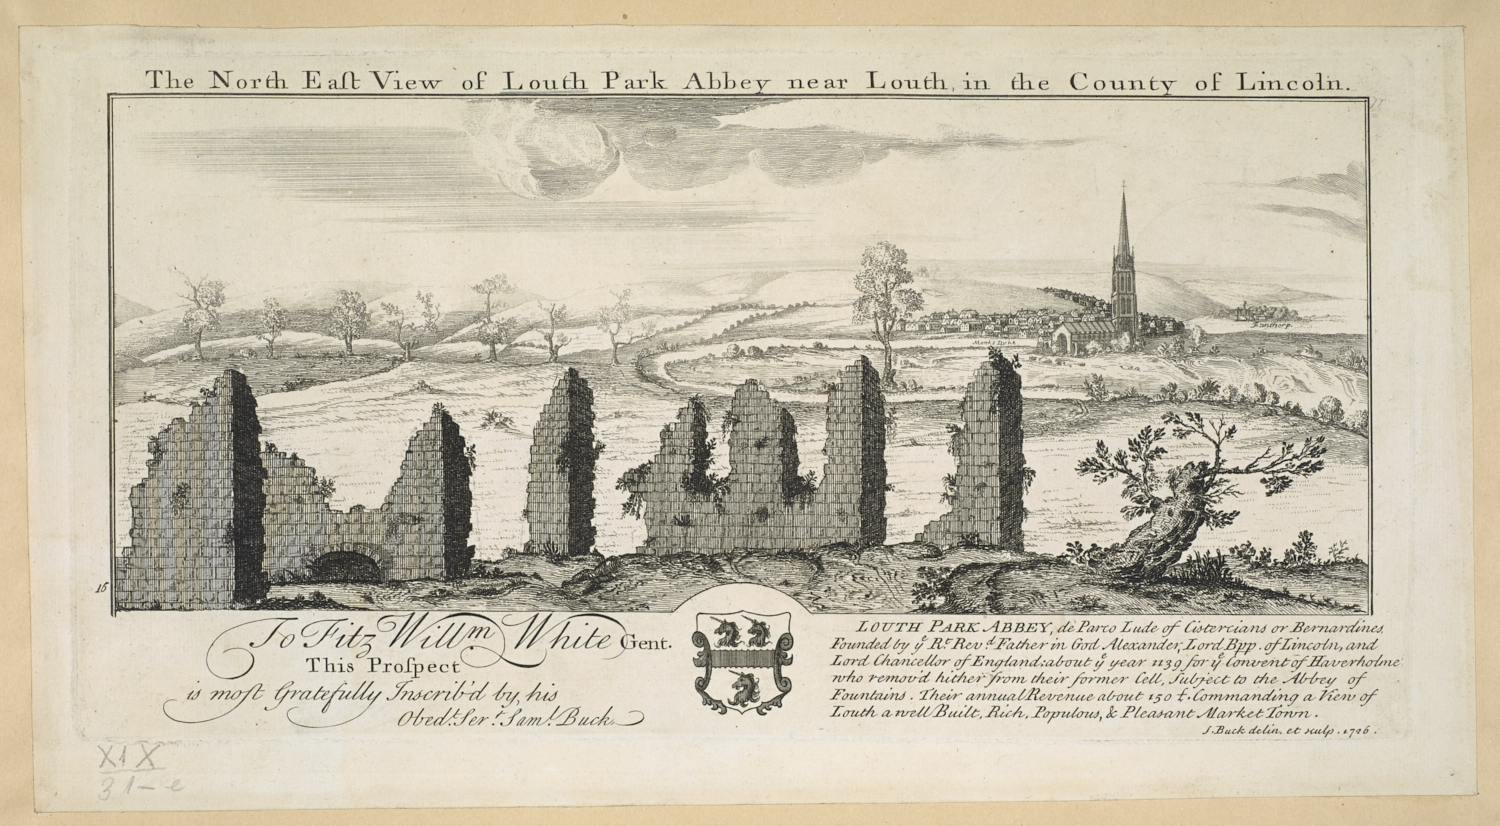 N.E. View of Louth Park Abbey near Louth, by Samuel Buck.